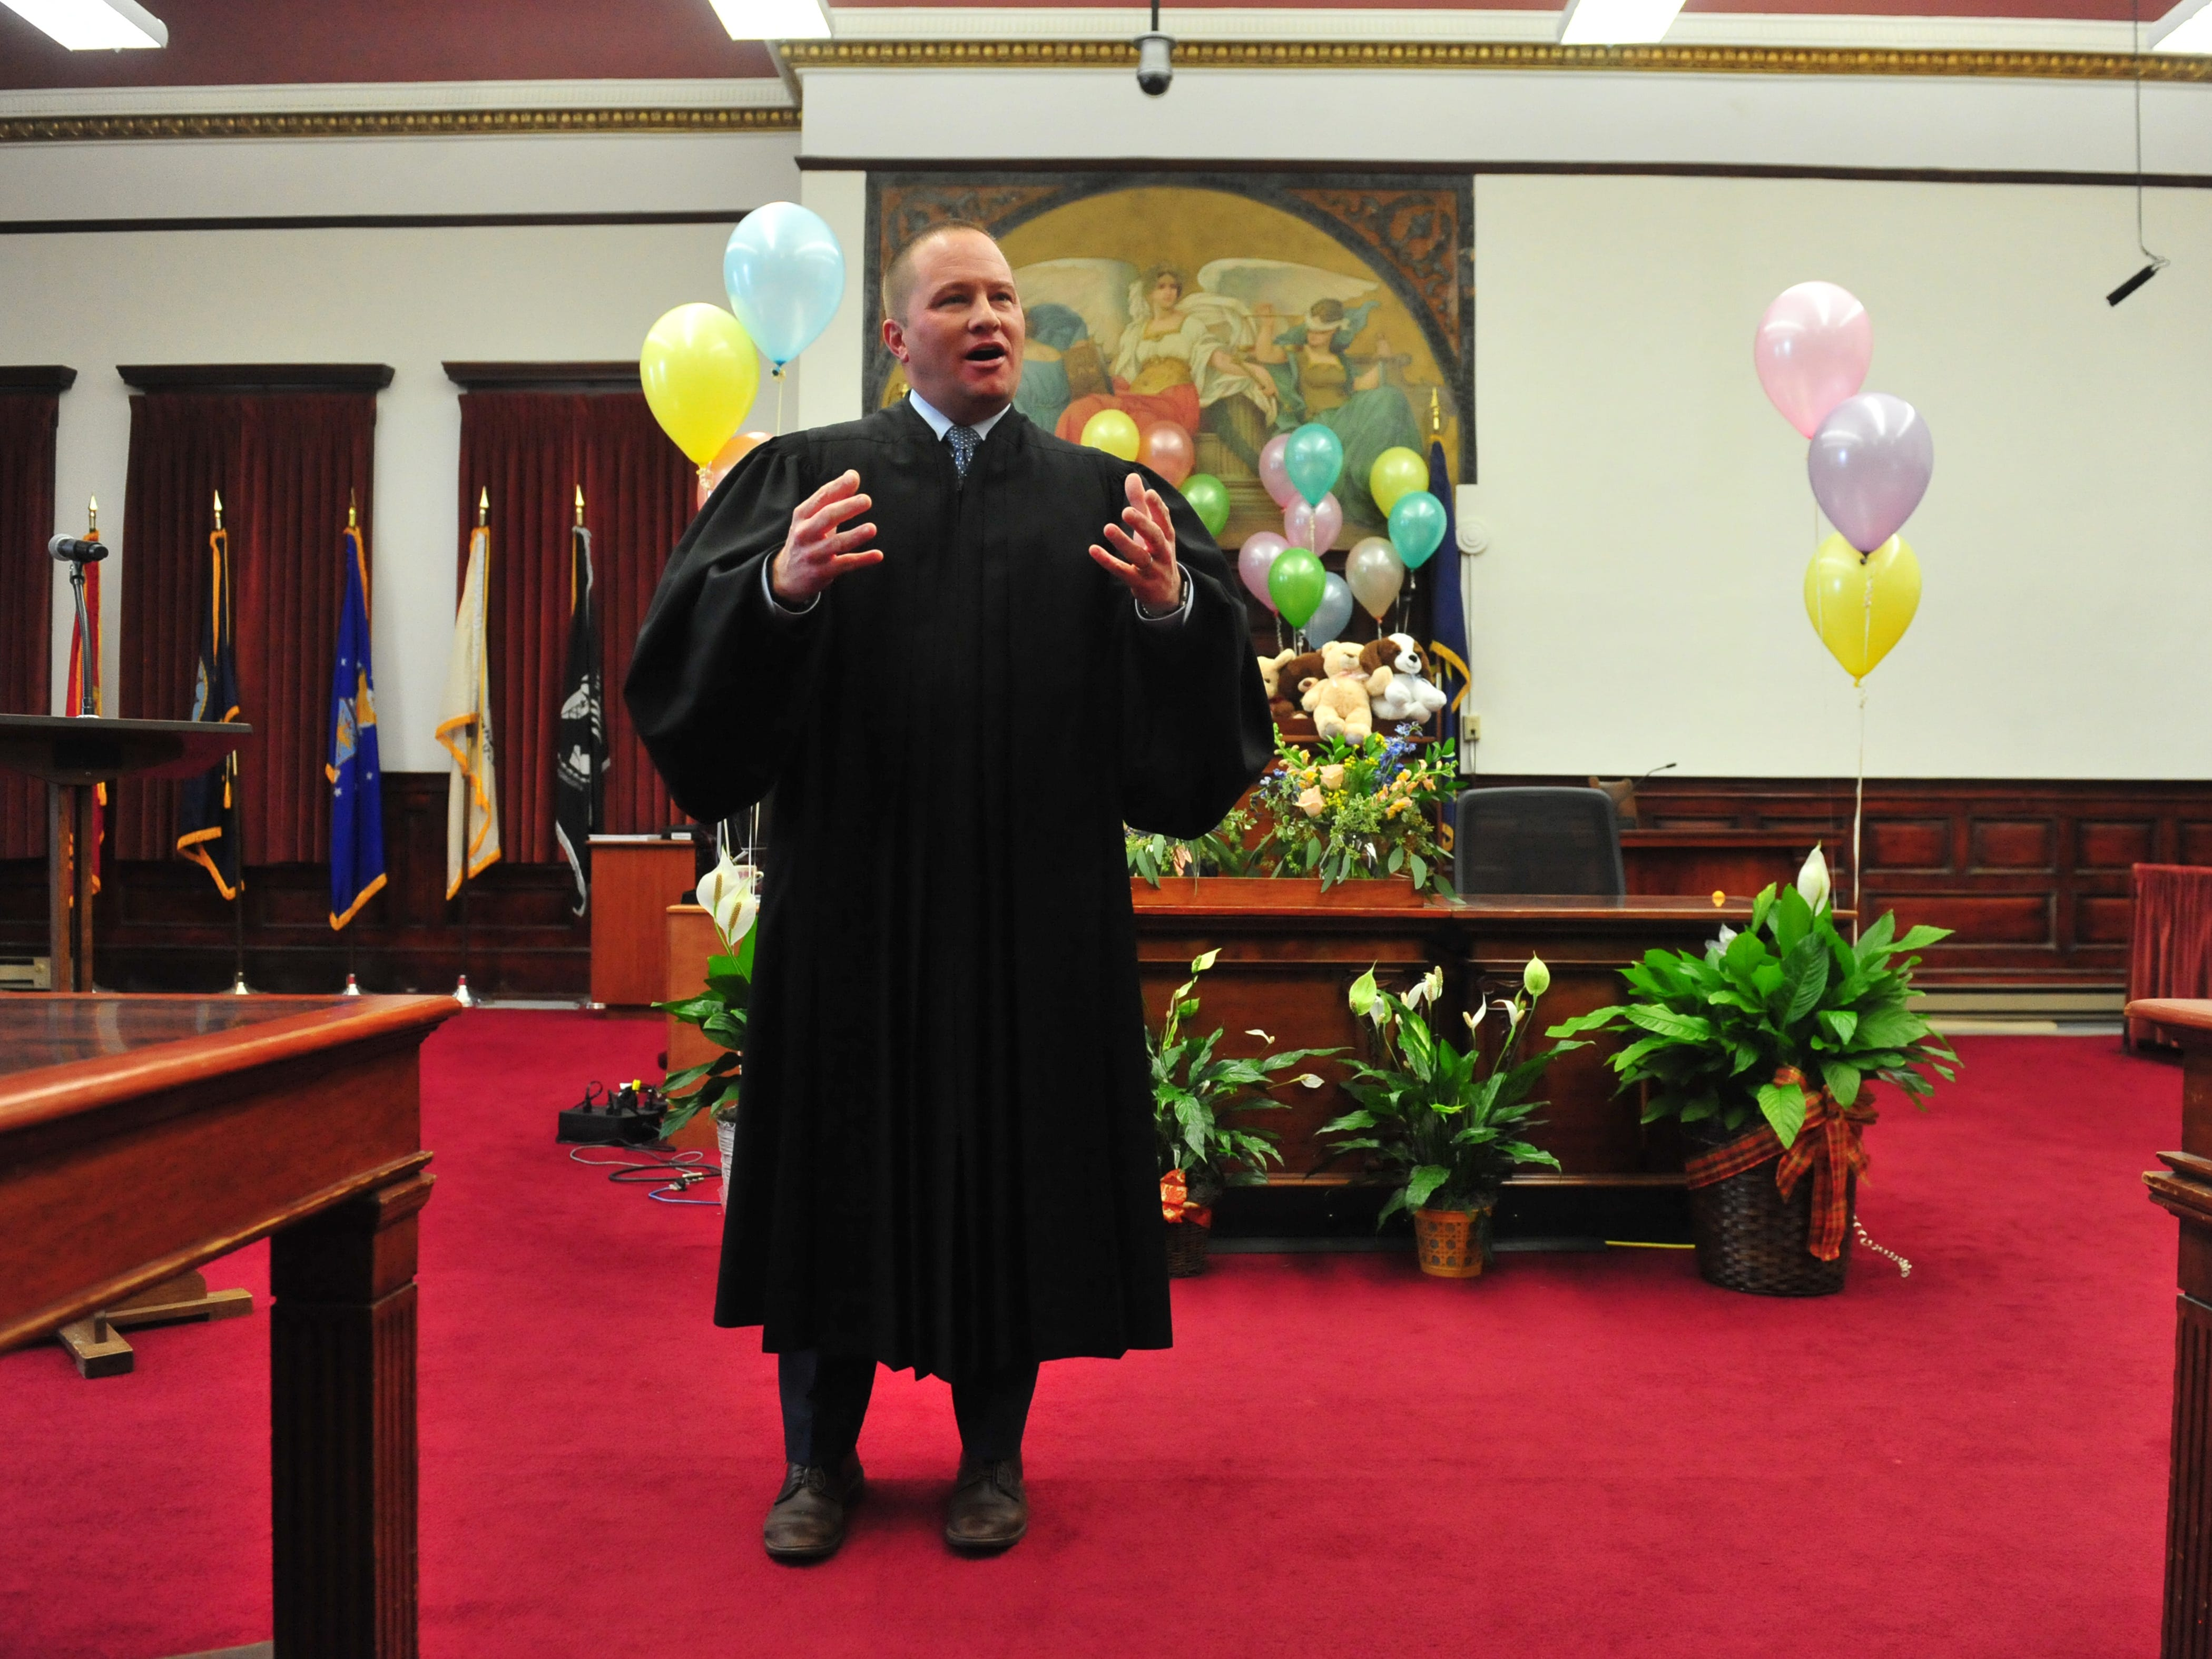 Judge Greg Pinski makes opening remarks during the Great Falls Adoption Day celebration on Friday in the Cascade County Courthouse.